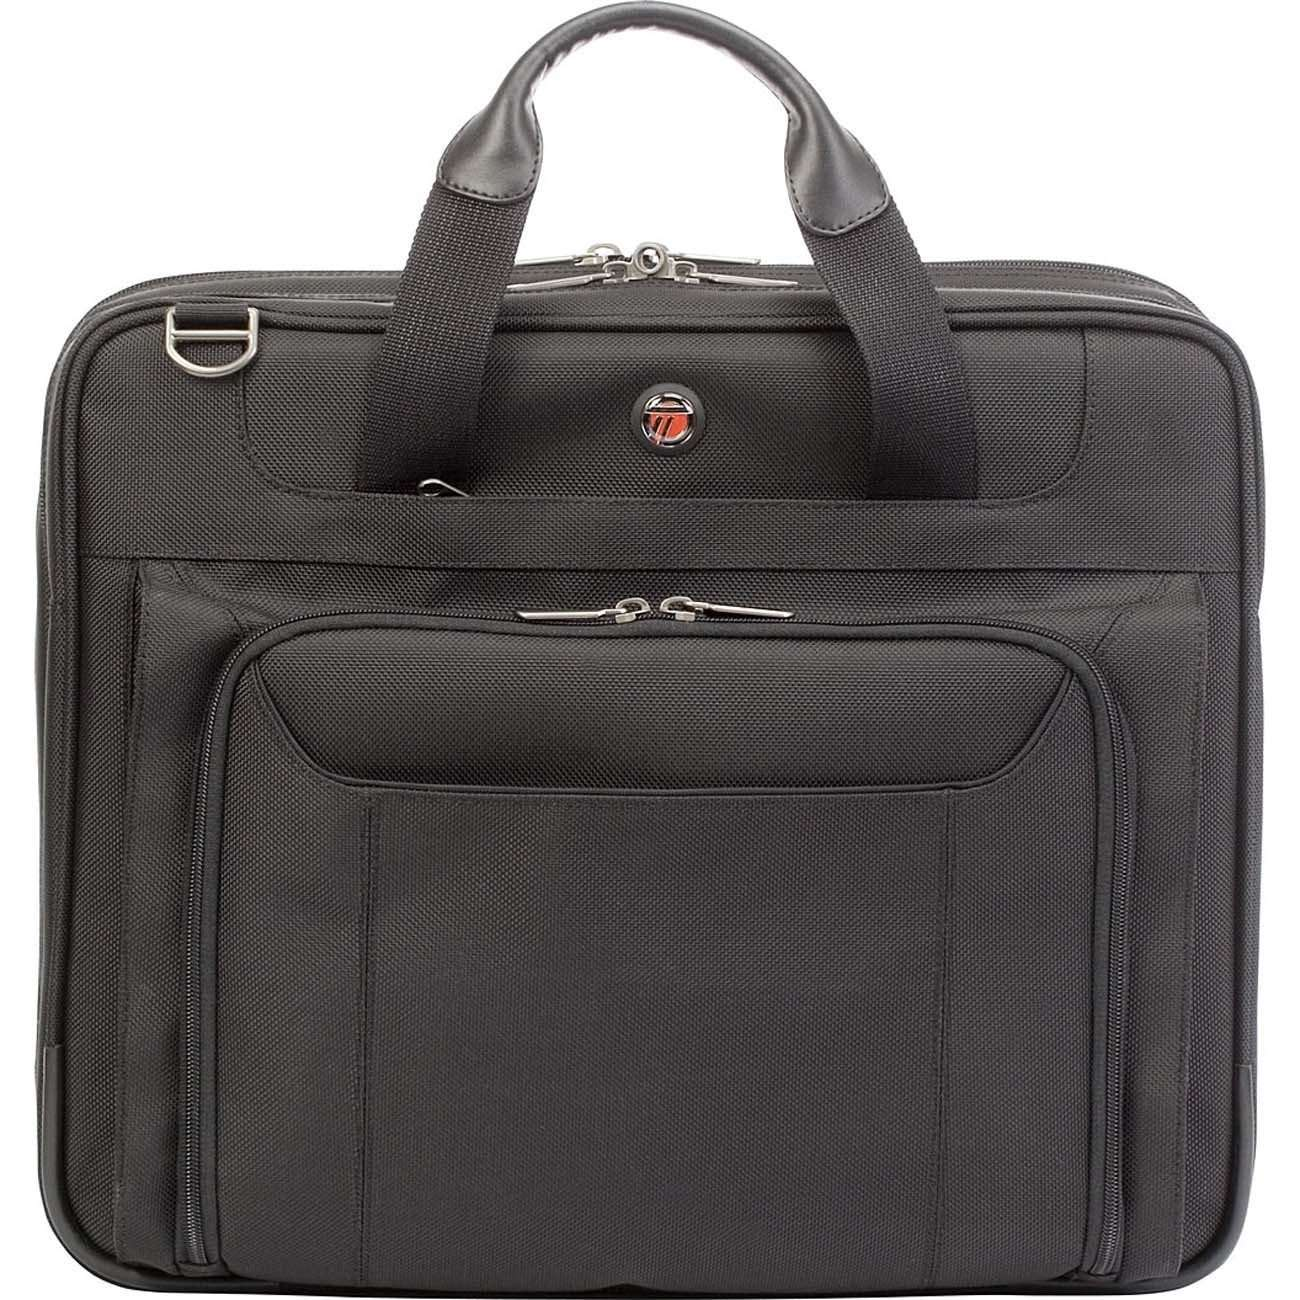 Targus CUCT02UA14S Carrying Case for 14